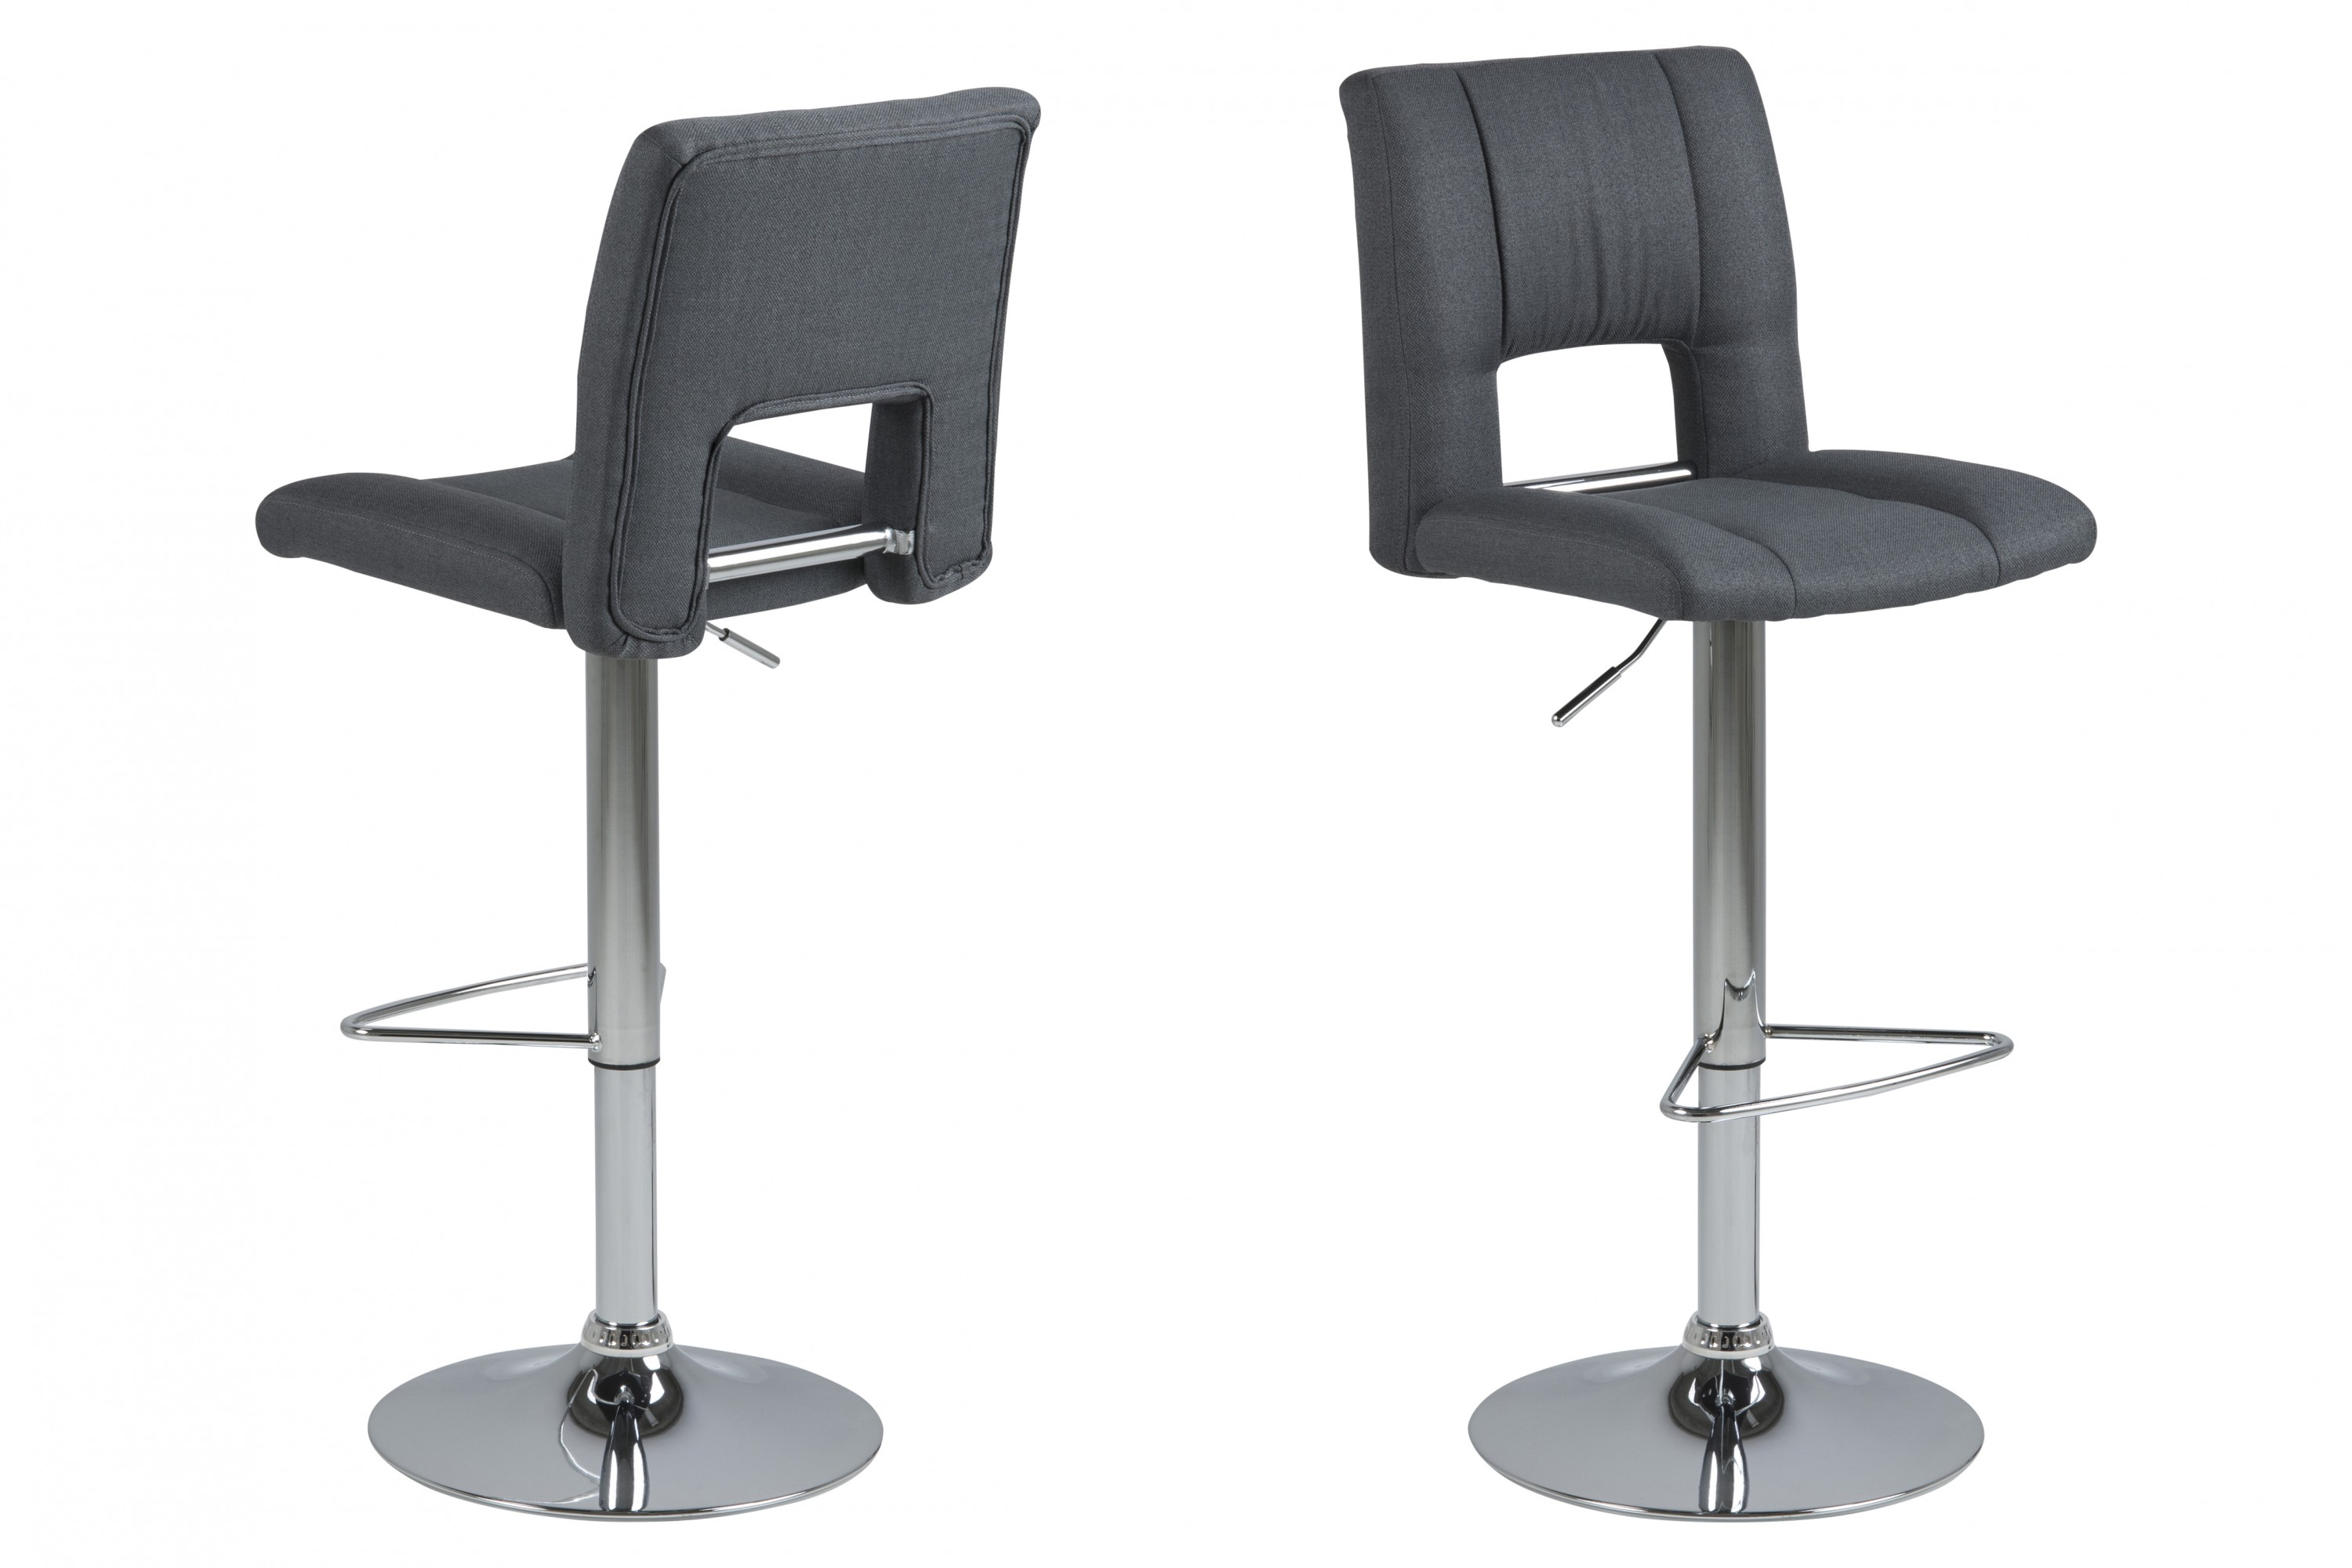 pkline 2x tabouret de bar sys en gris fonc comptoir chaise ebay. Black Bedroom Furniture Sets. Home Design Ideas